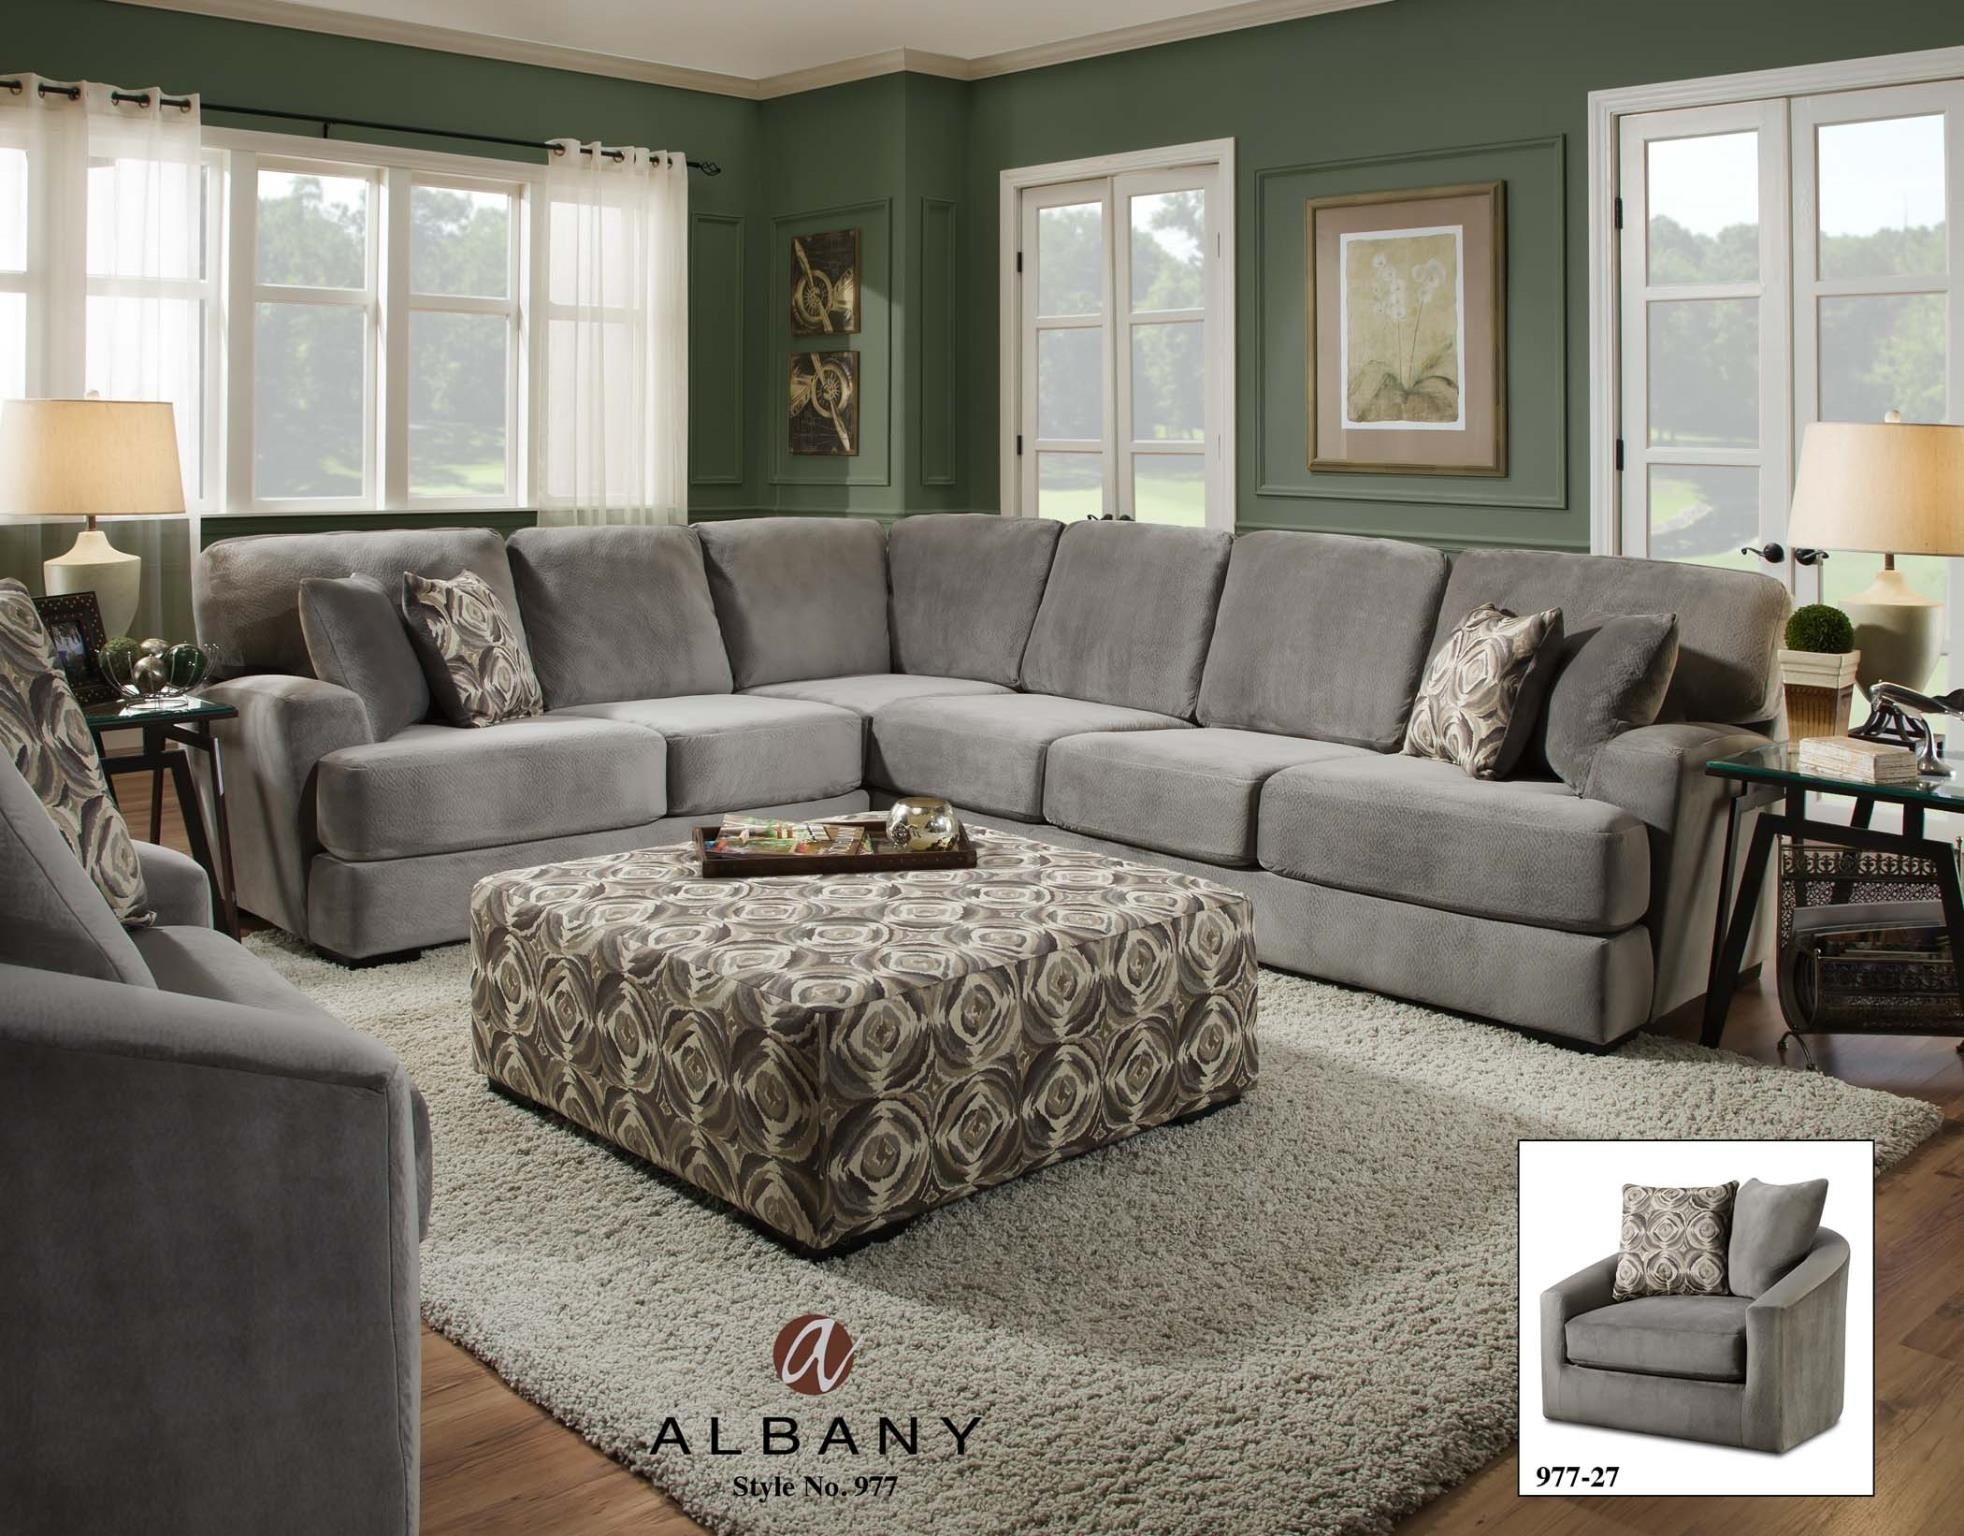 Albany Living Room SWIVEL CHAIR 977 27 At Feceras Furniture U0026 Mattress